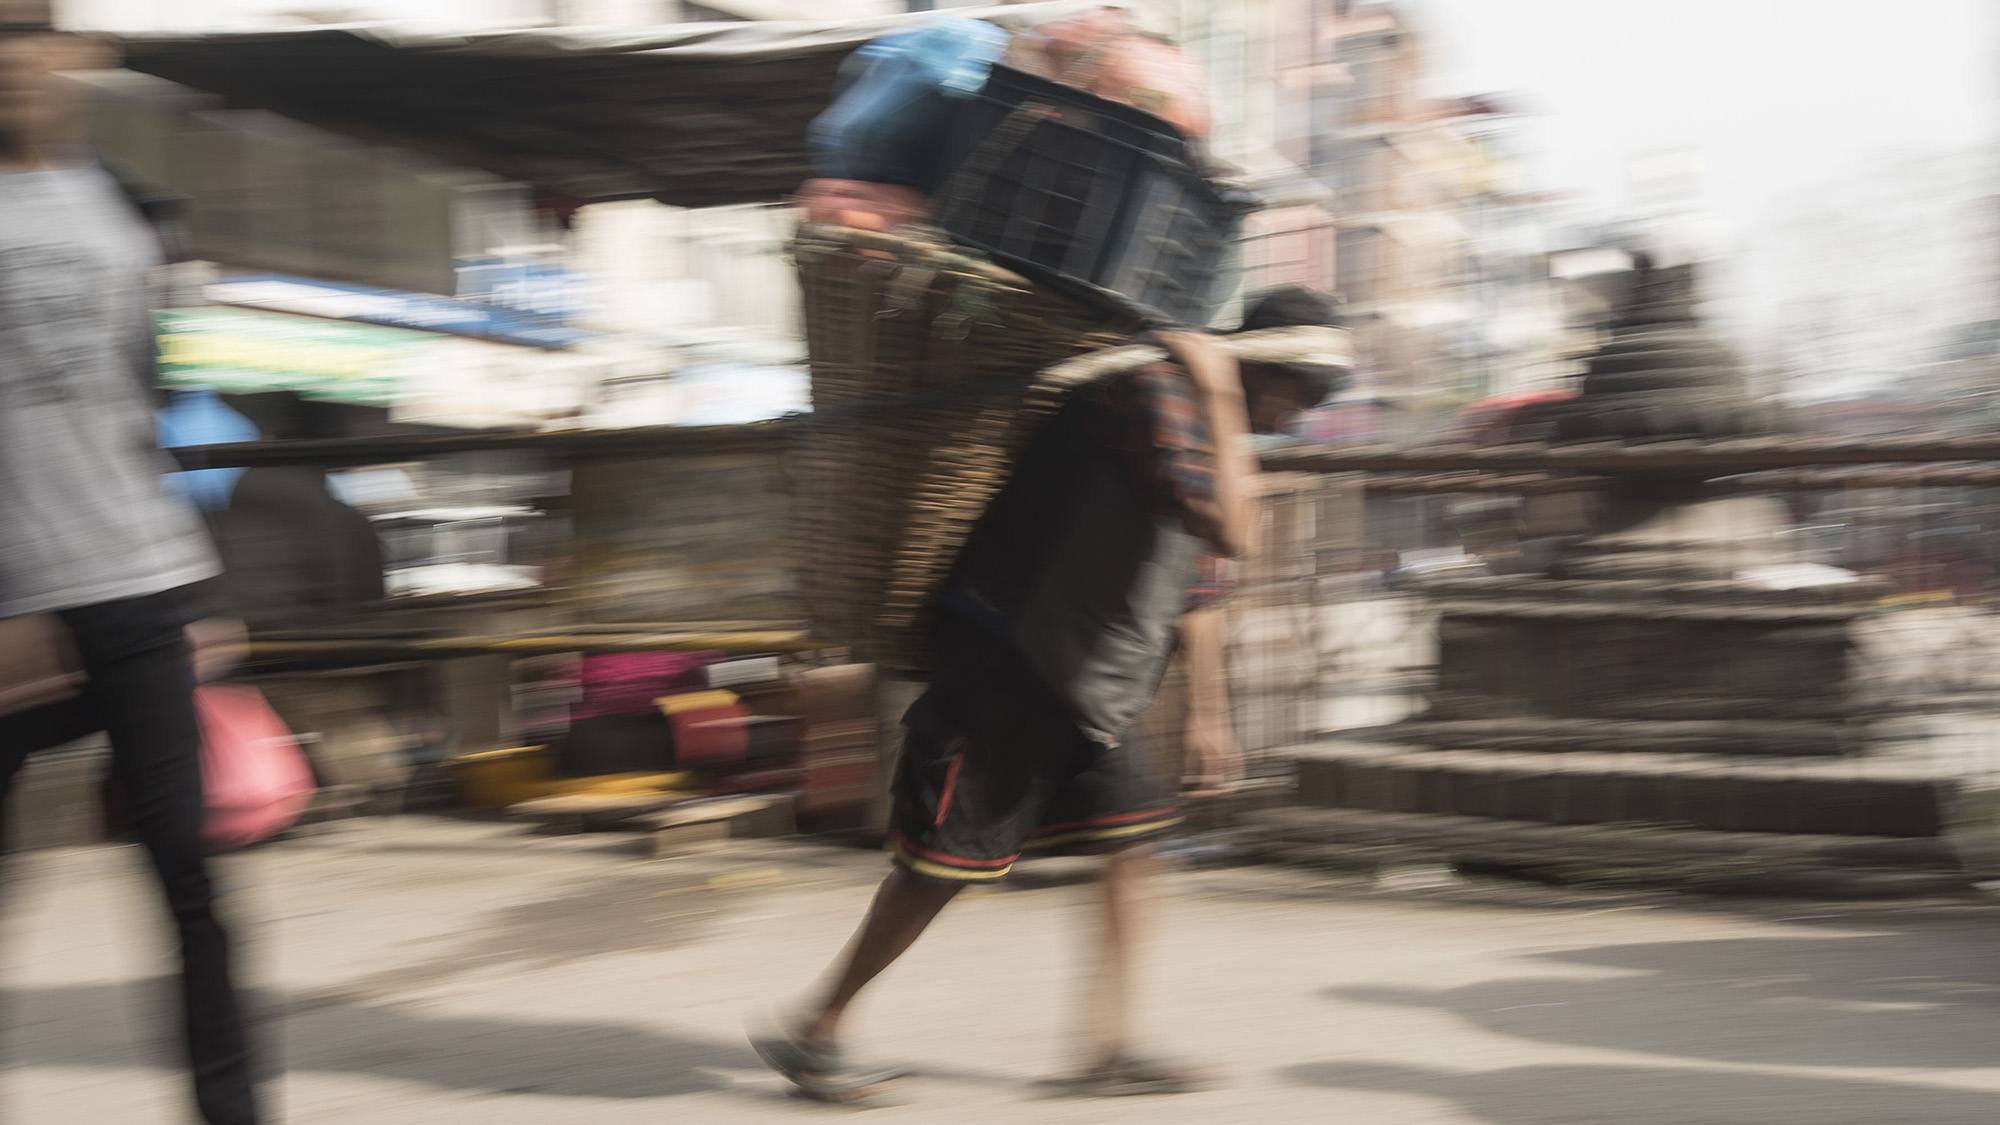 Manual labor is still frequent.  The transportation of goods within the small streets of Kathmandu is primarily done on the backs of locals or with small carts.